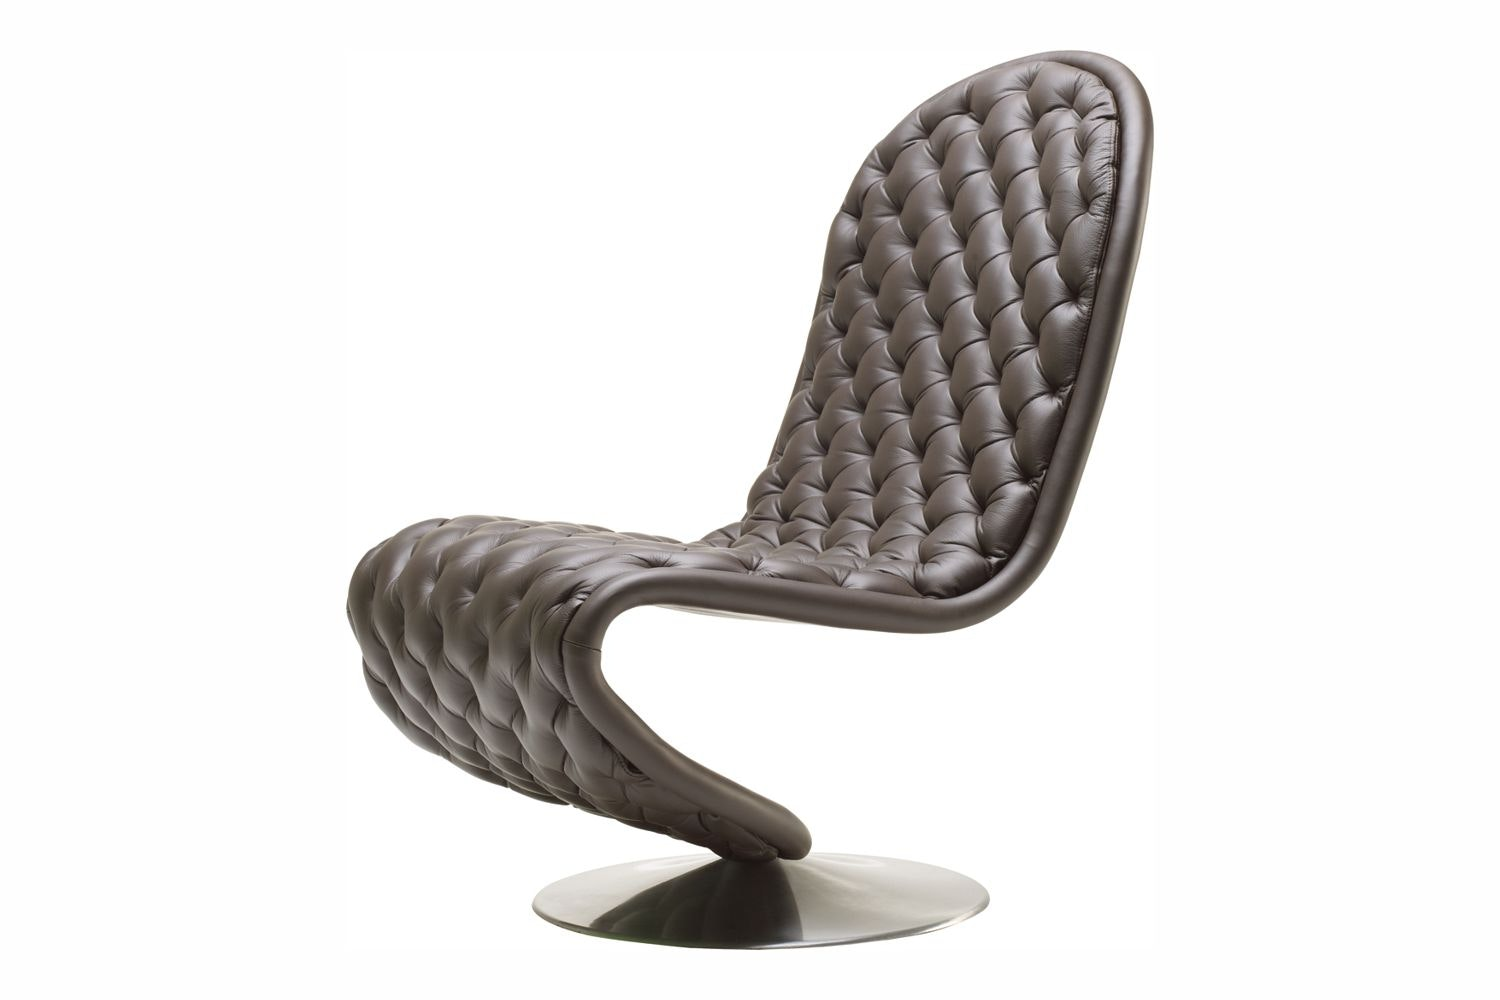 System 1-2-3 Lounge Chair Deluxe by Verner Panton for Verpan